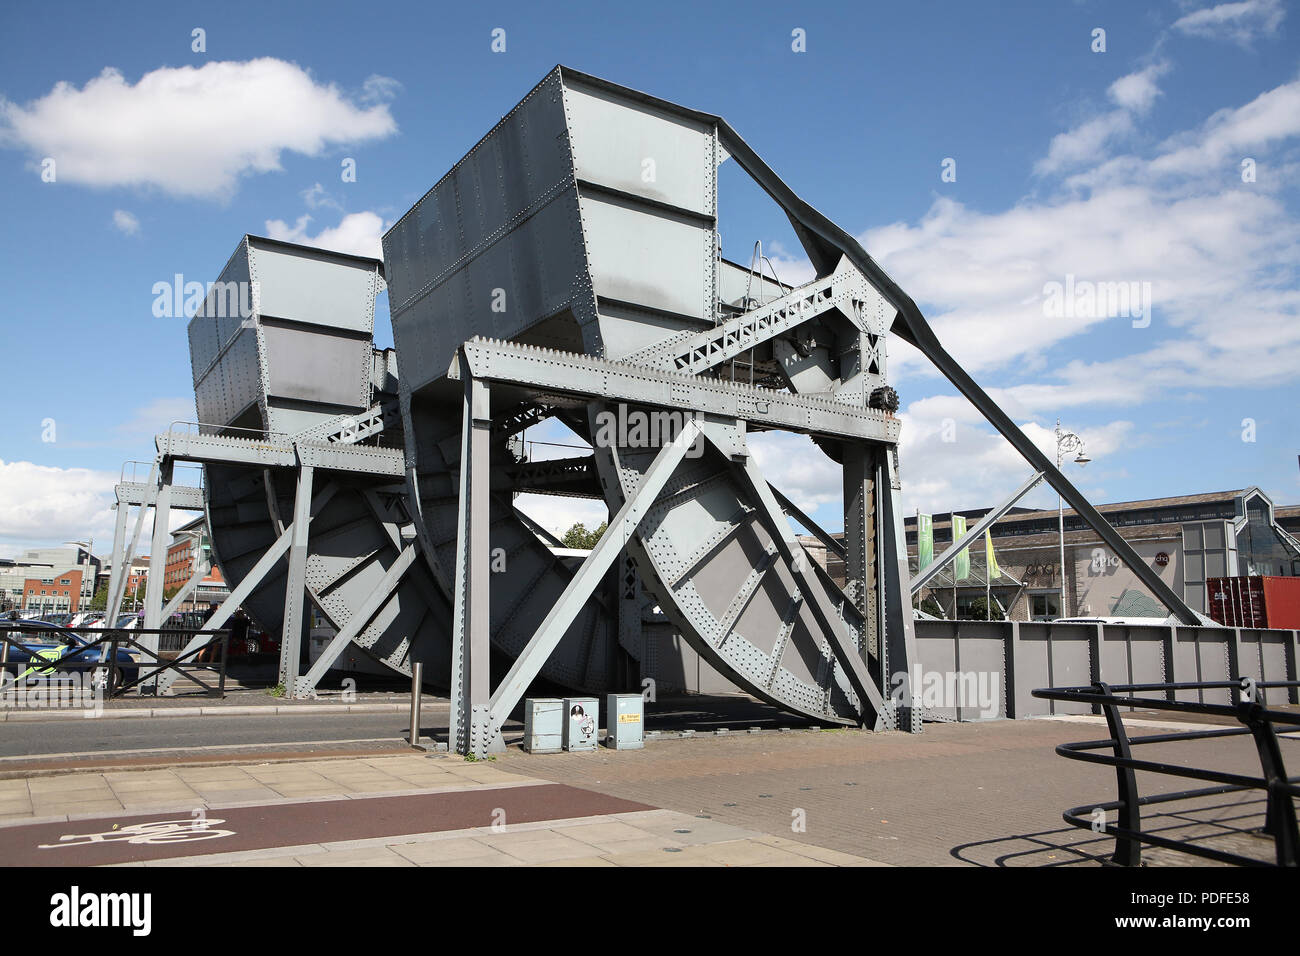 Scherzer rolling lift bridge - Stock Image